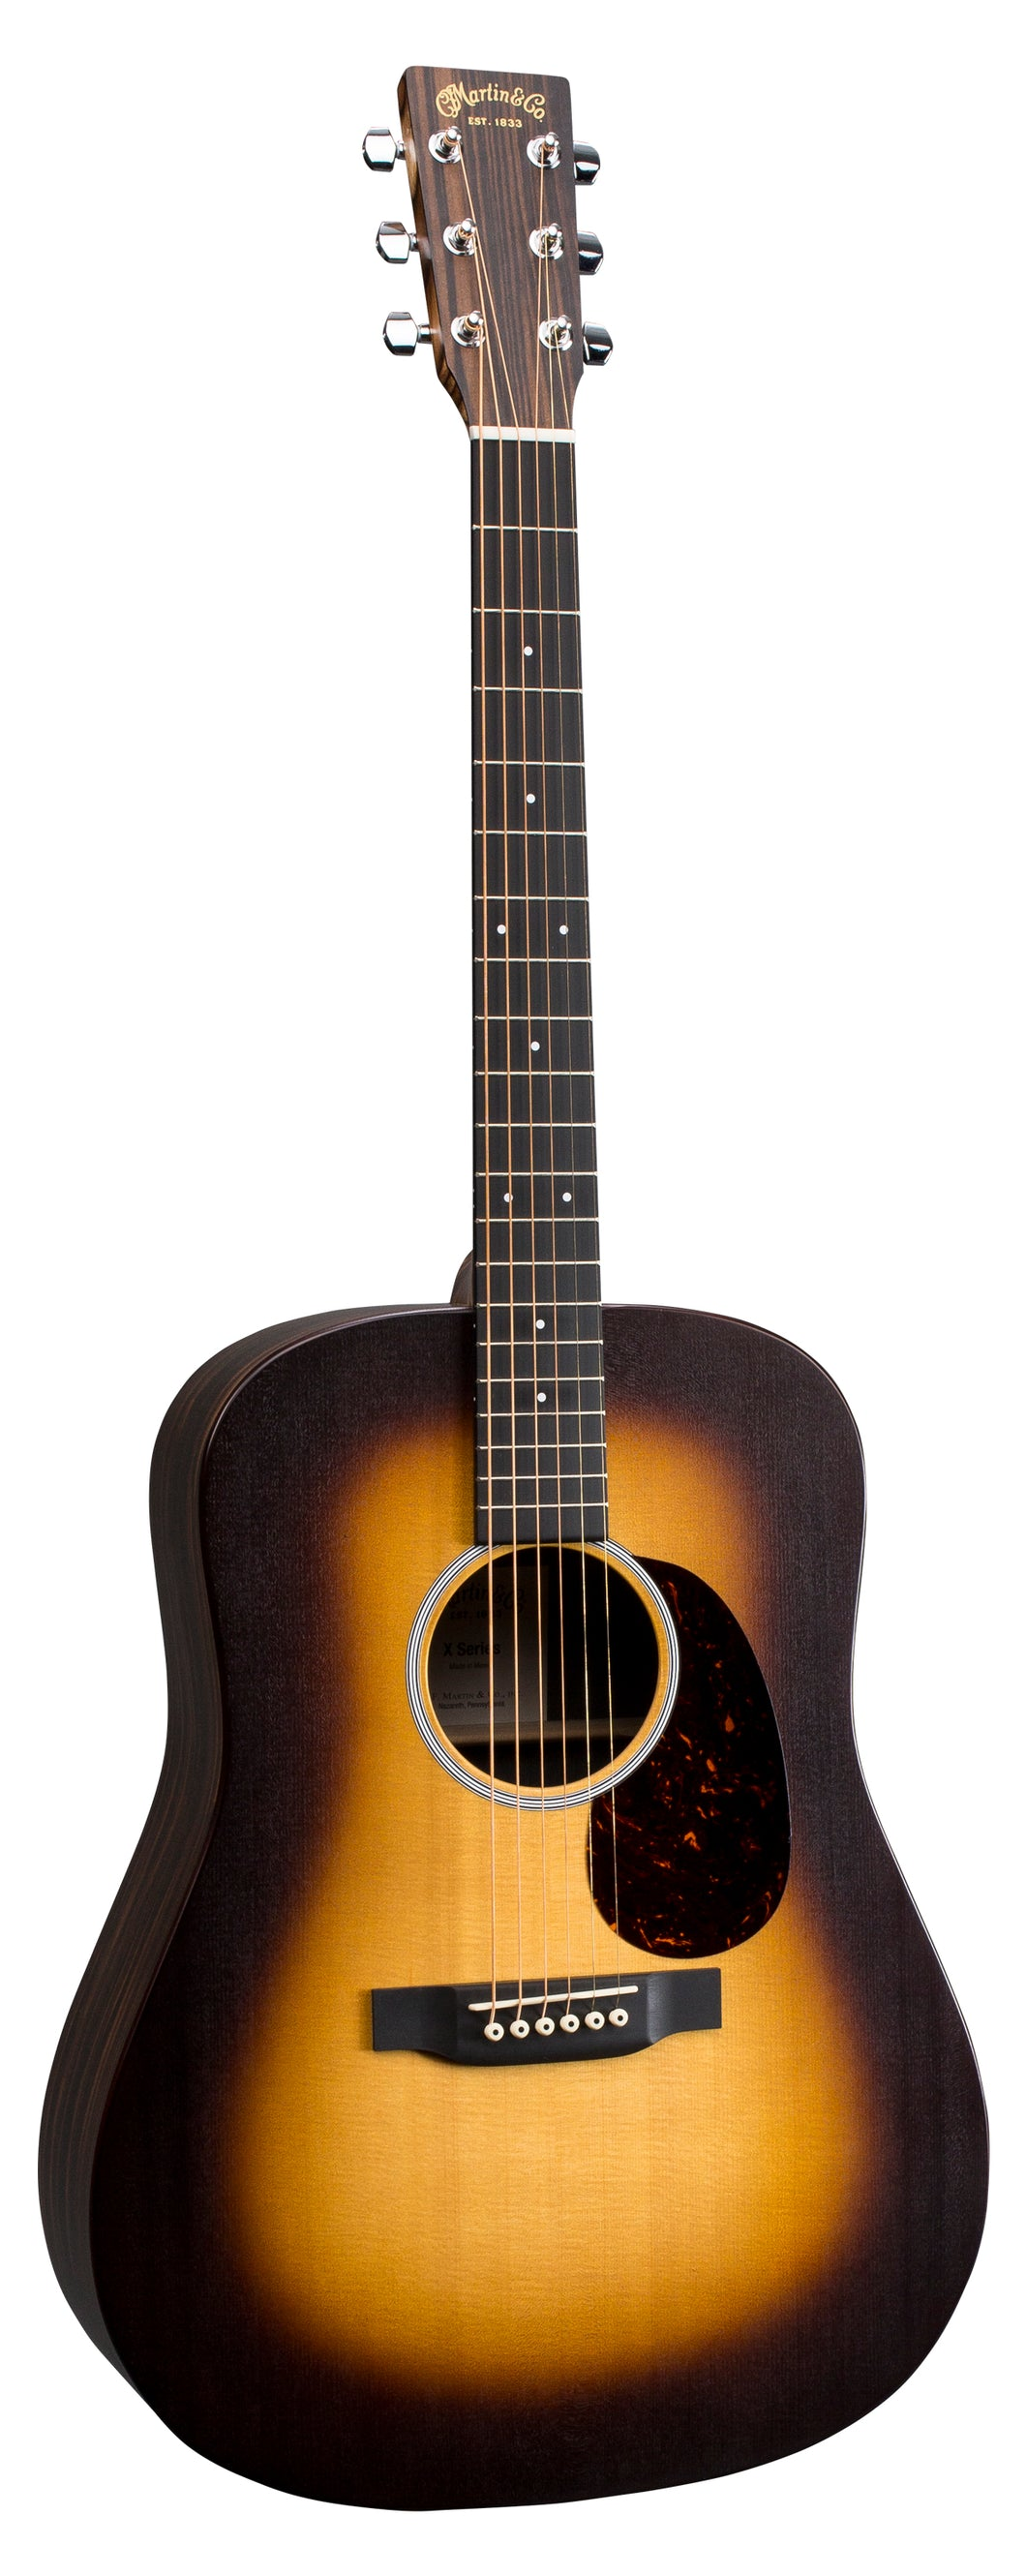 Martin DX1AE  Macassar Burst X Series Acoustic Guitar with Sonitone